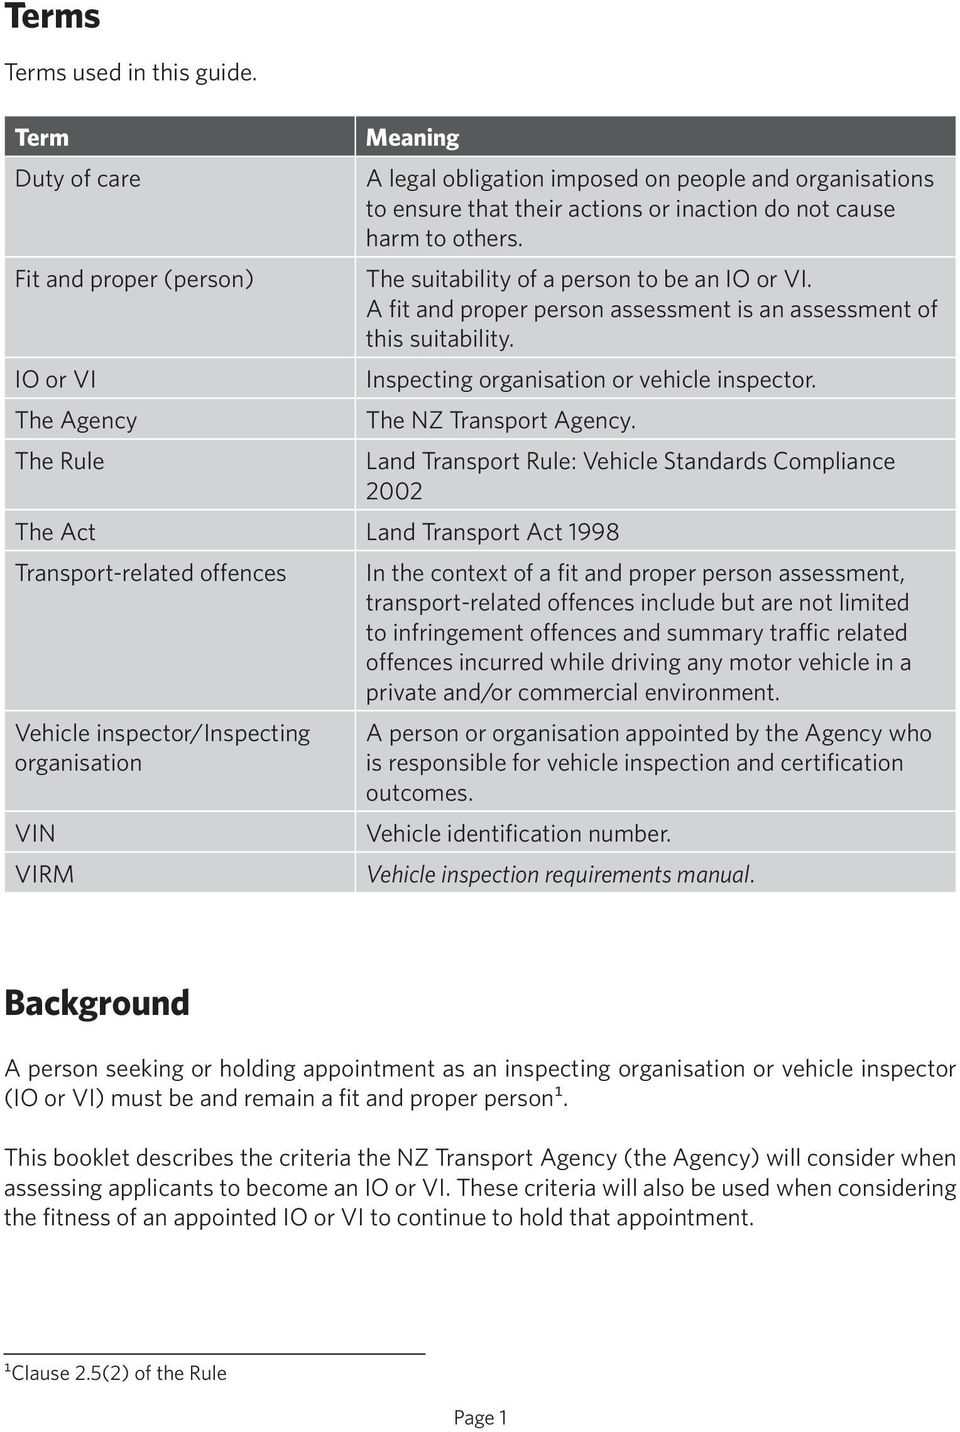 others. The suitability of a person to be an IO or VI. A fit and proper person assessment is an assessment of this suitability. Inspecting organisation or vehicle inspector. The NZ Transport Agency.